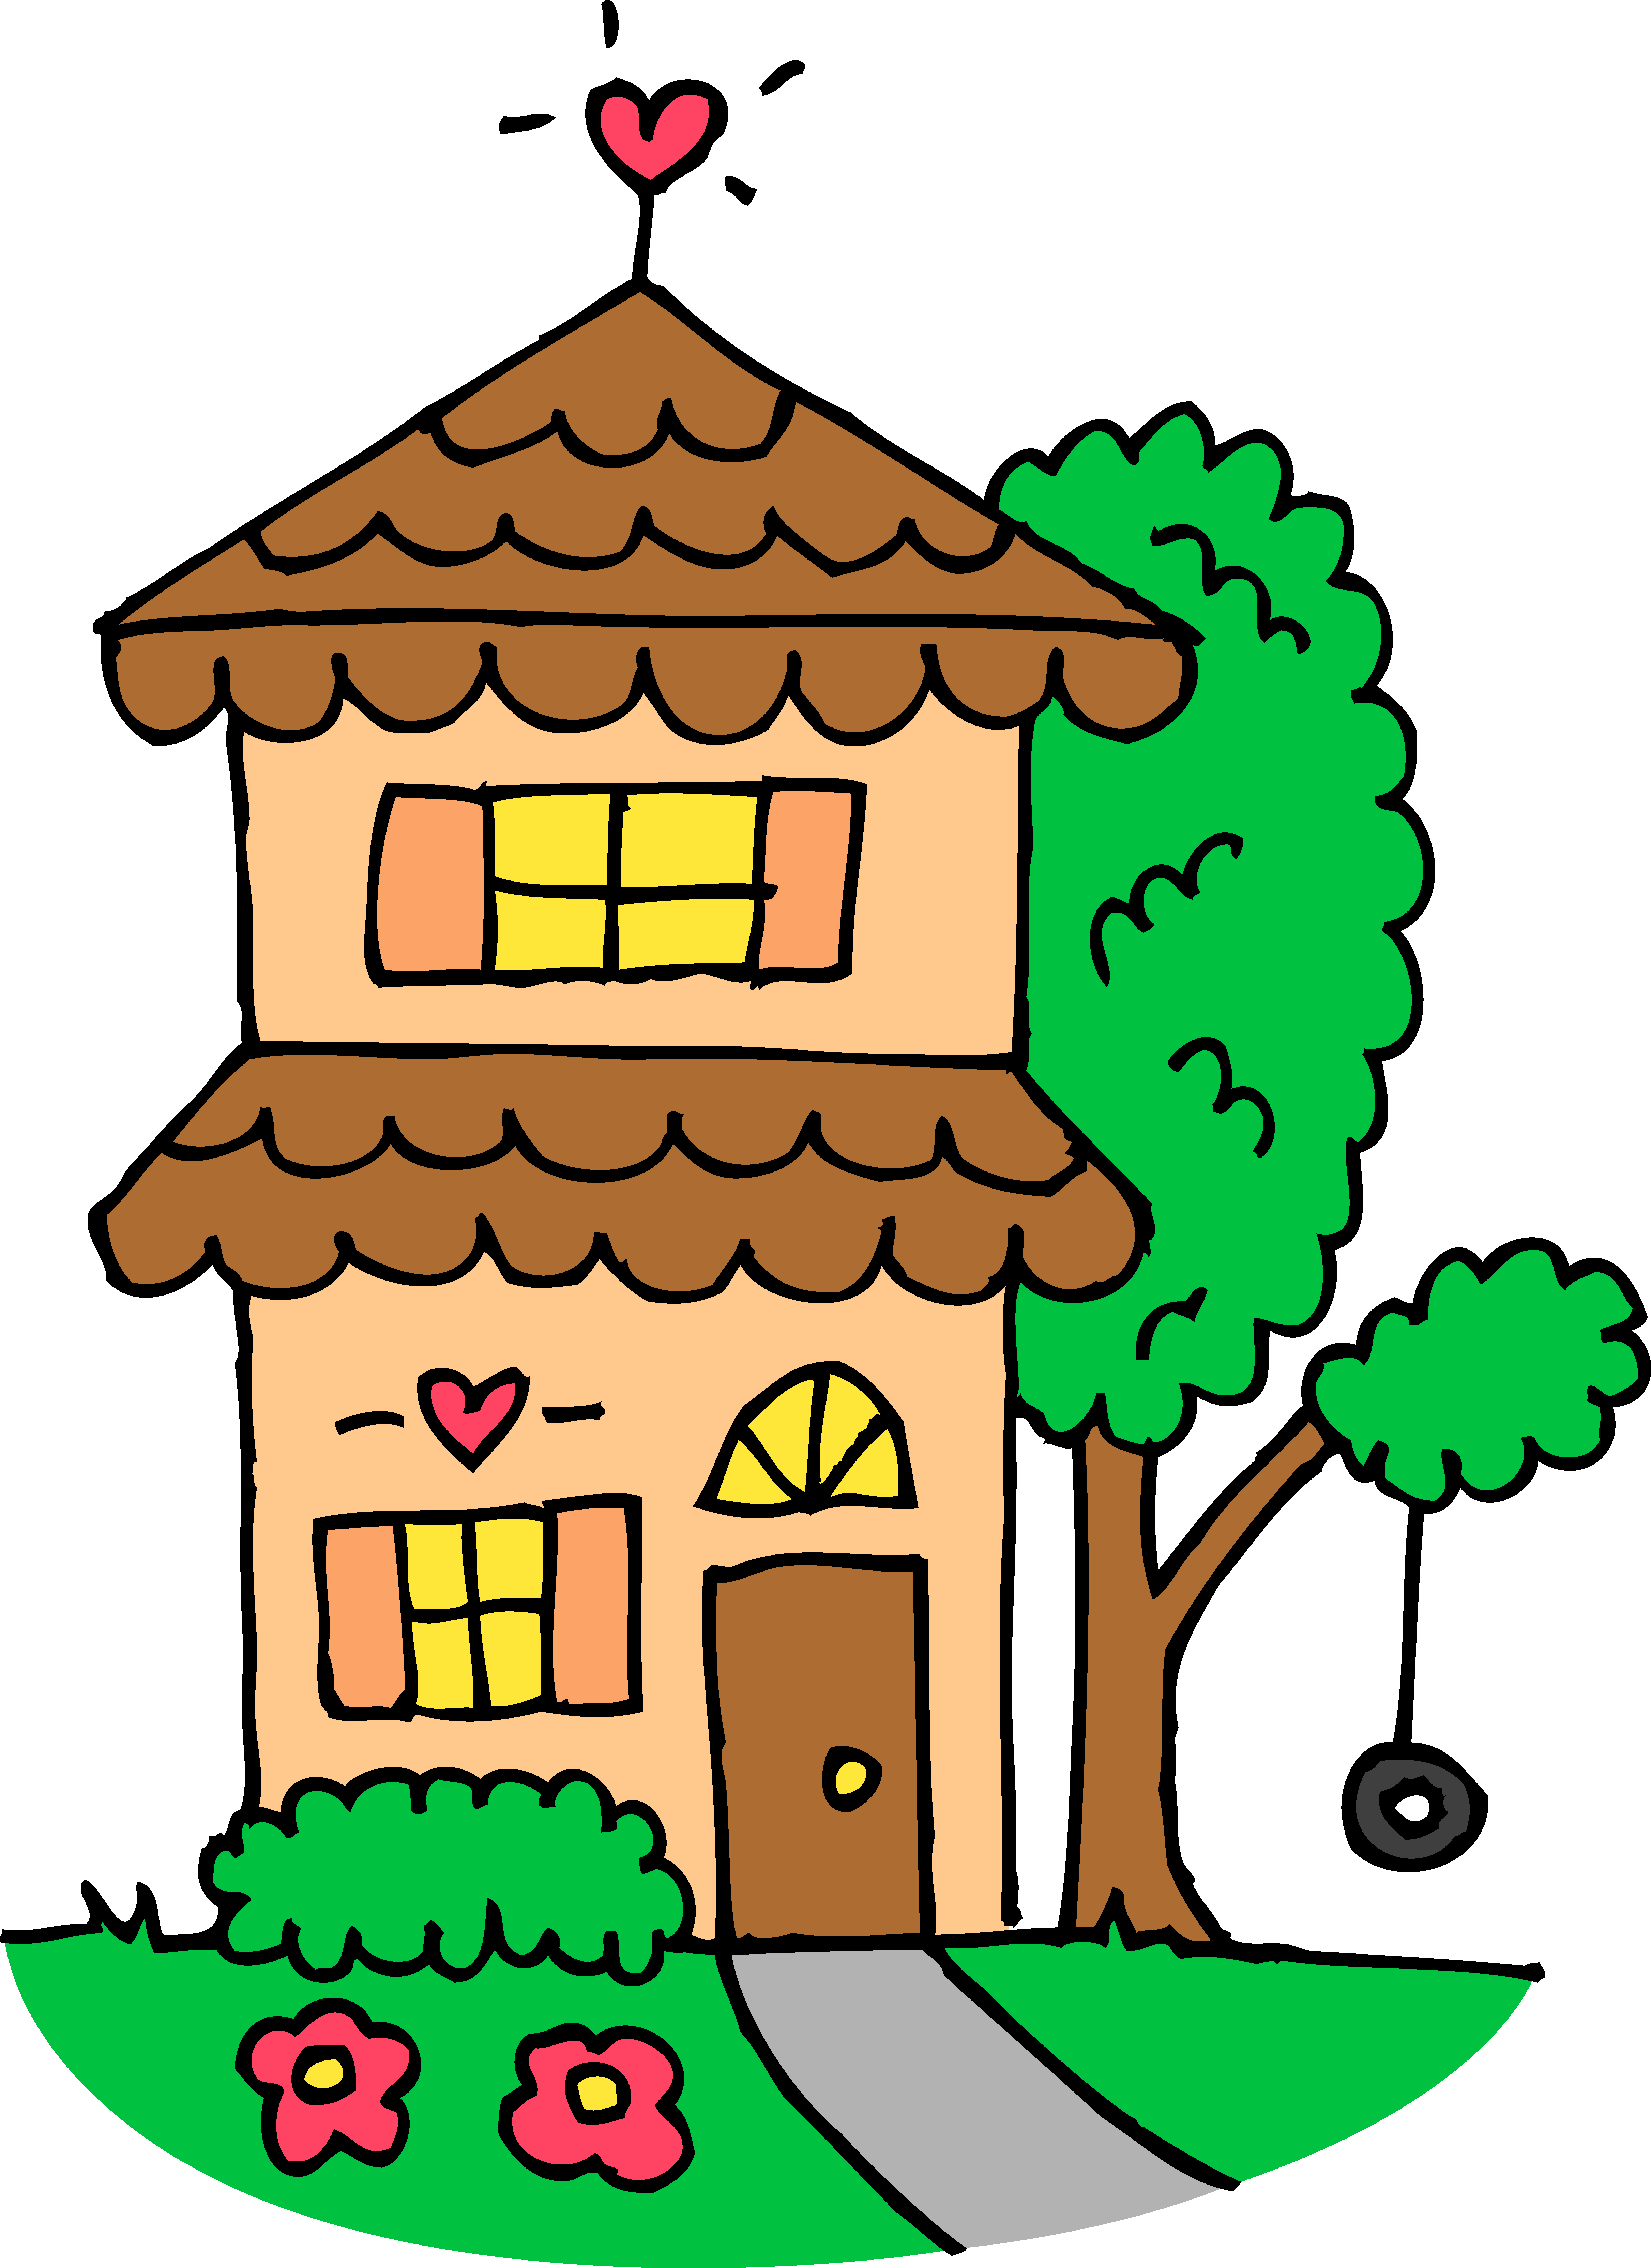 Mansion clipart colorful Of image clipart DriverLayer house